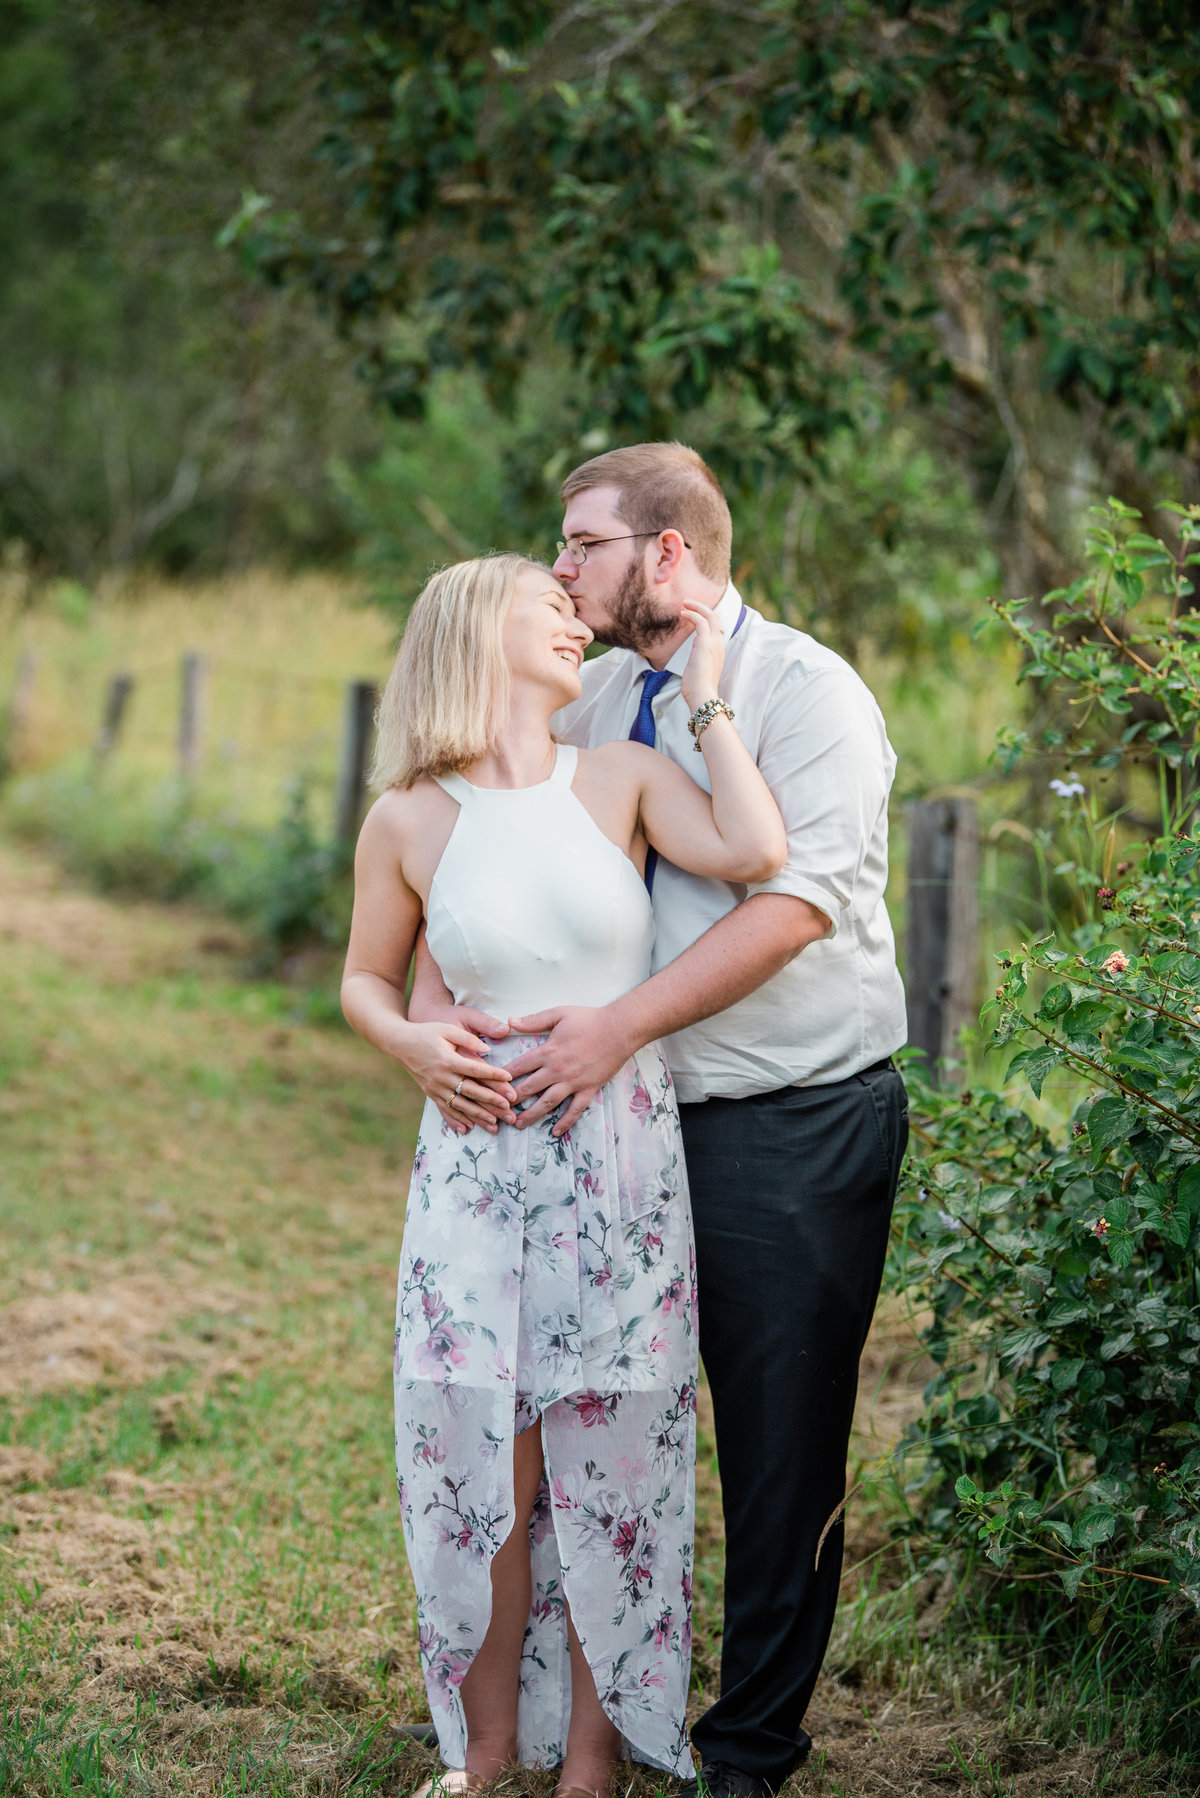 couple-guy-kissing-girls-forehead-rural-lead-images-photography (1 of 1)